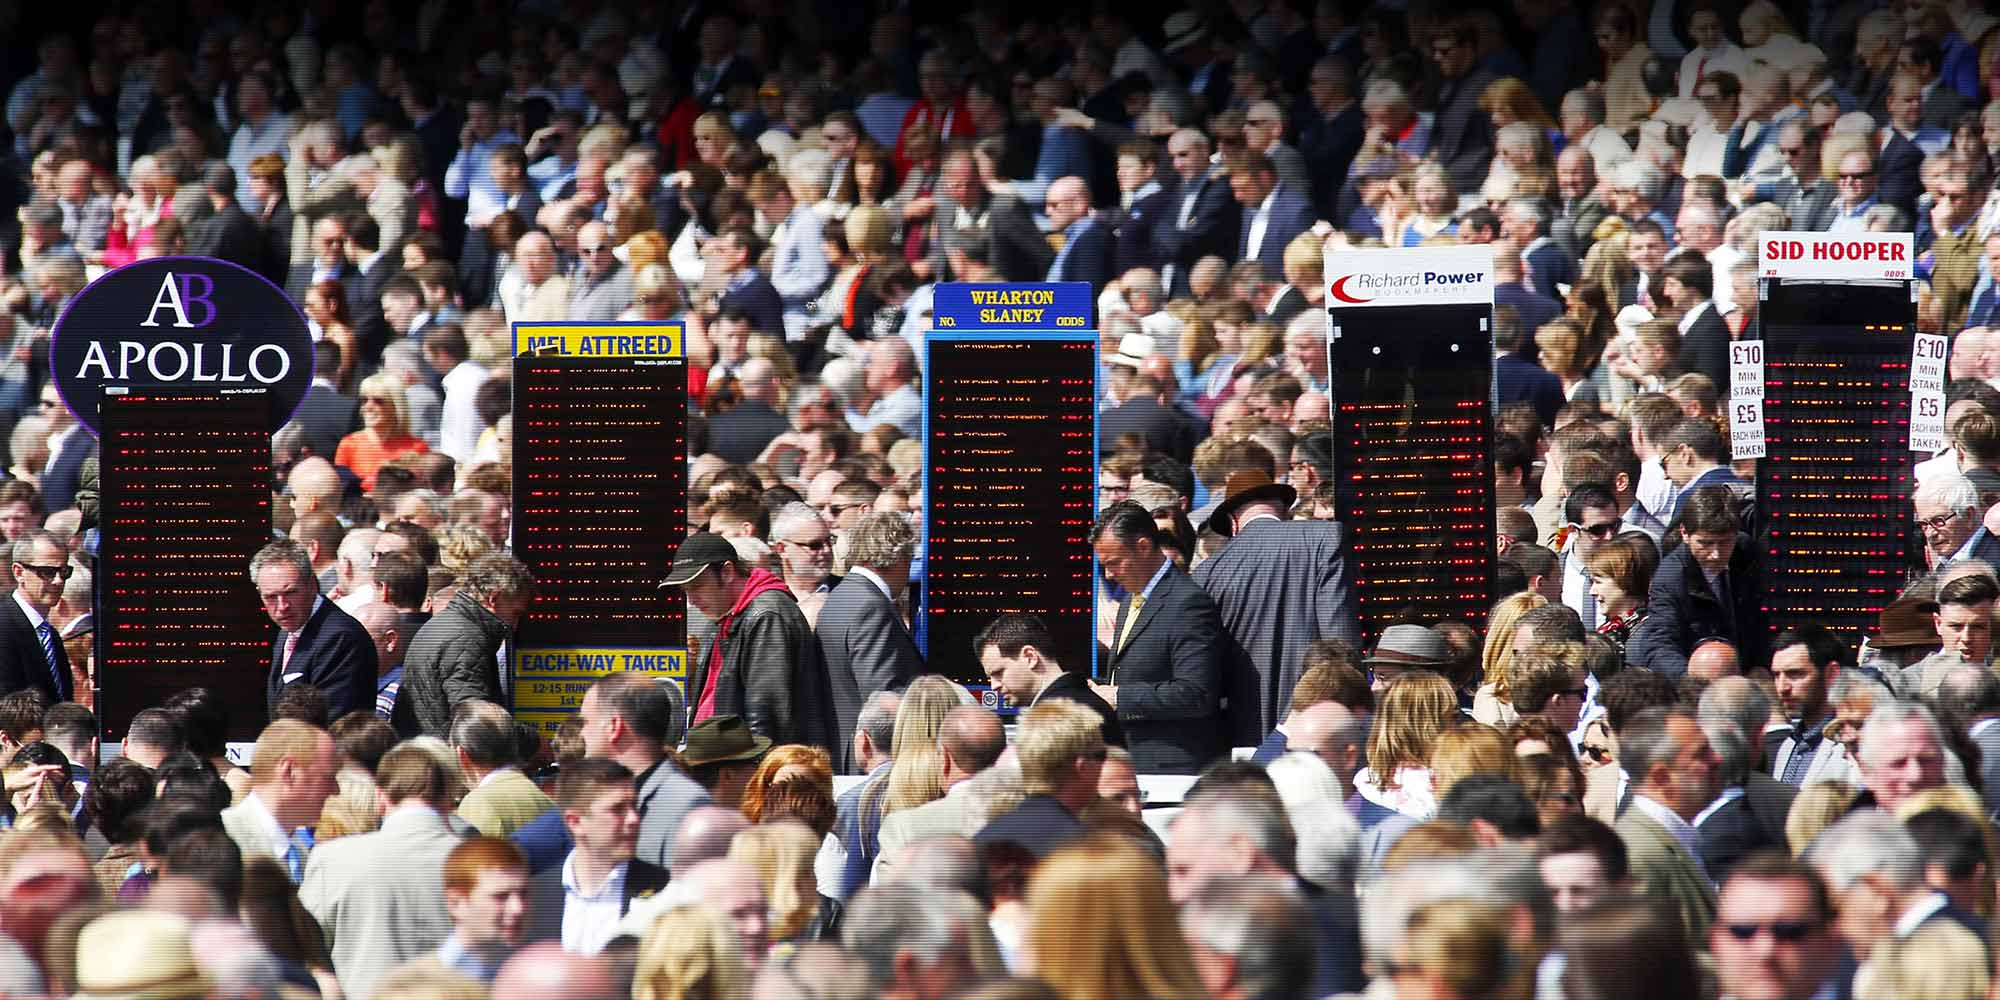 HORSE RACING BETTING MARKETS EXPLAINED